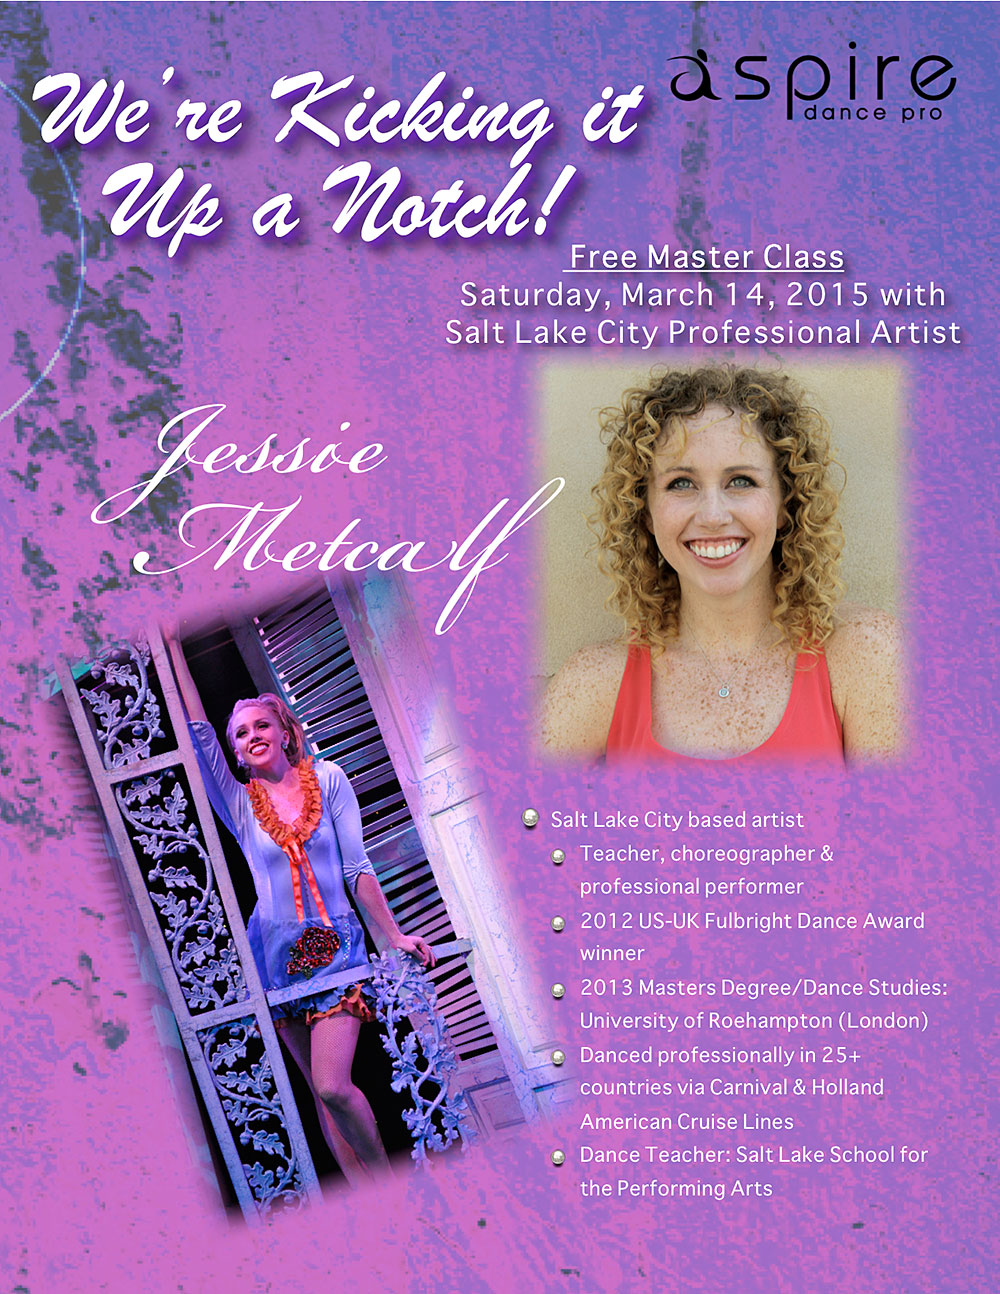 Jessie Metcalf - Aspire Dance Pro Competitions Masterclass Instructor